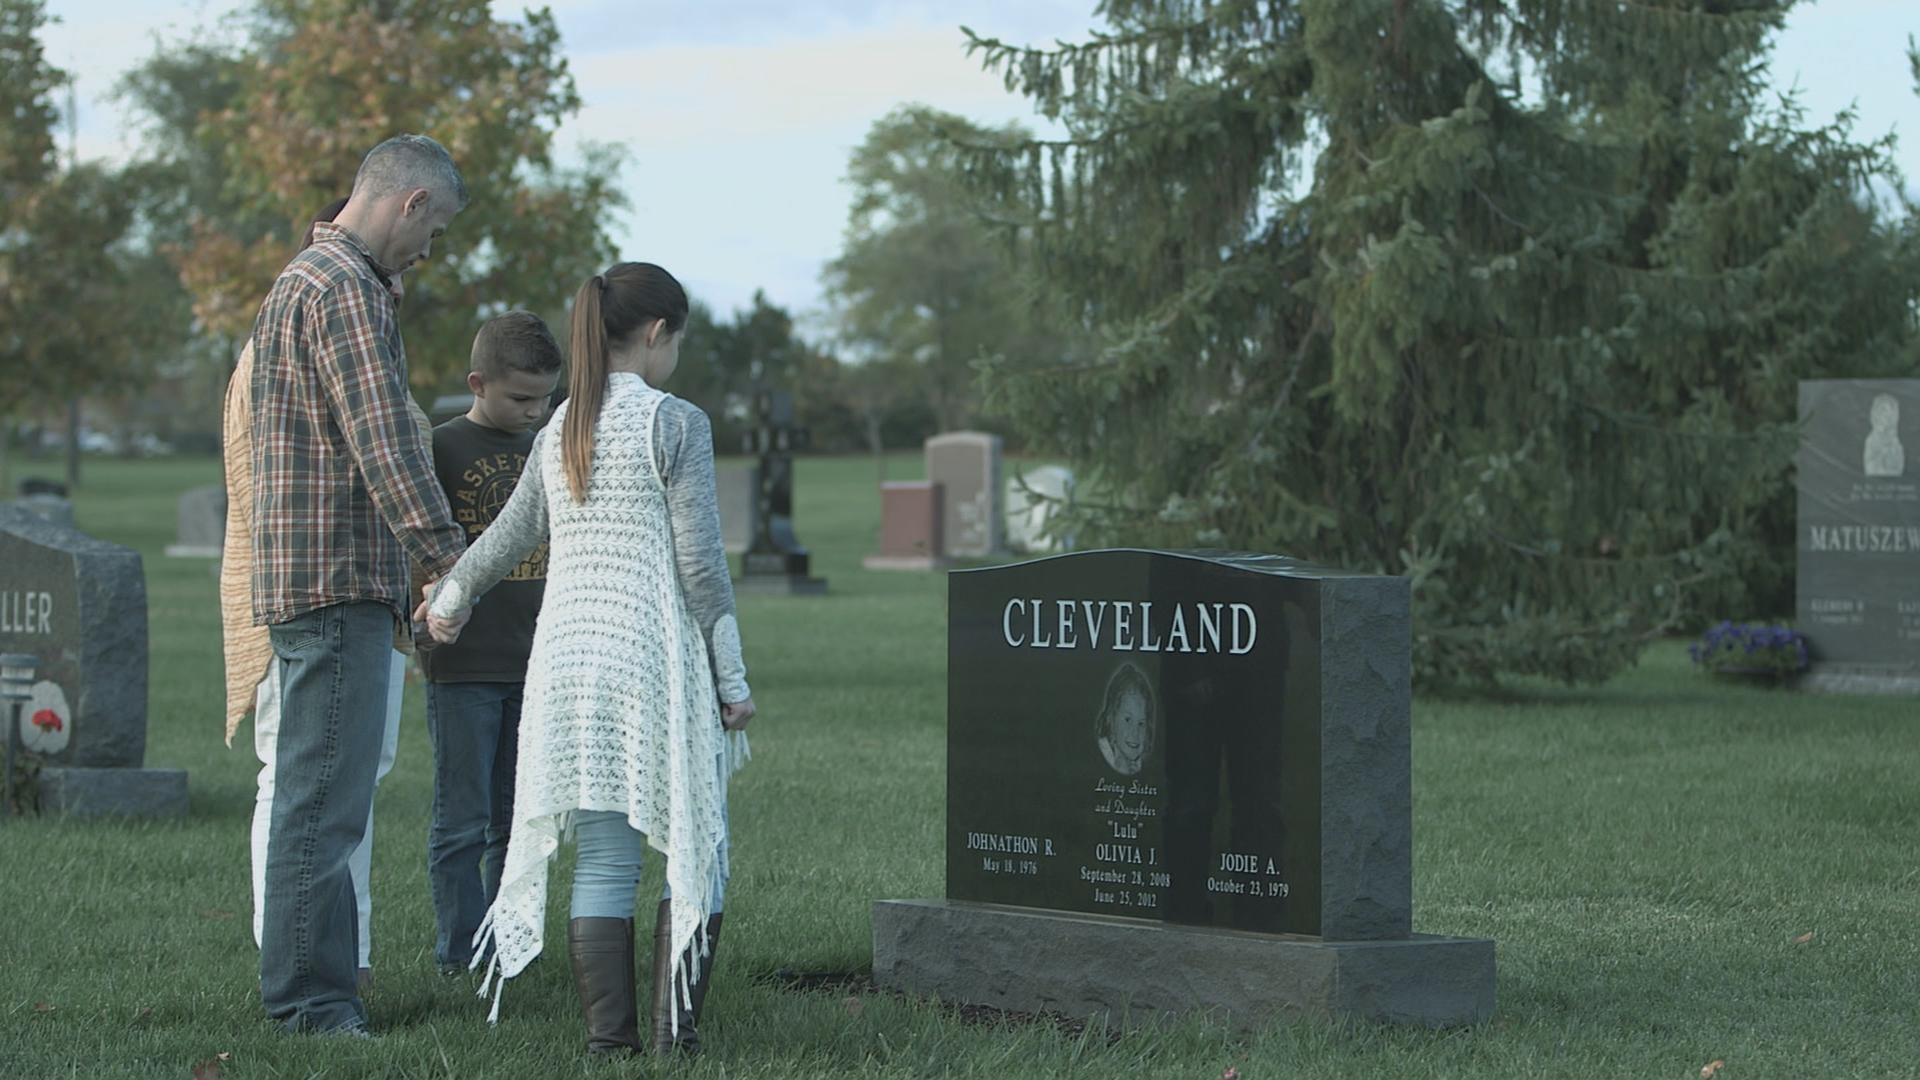 One person's decision to drive drunk, changed the Cleveland family forever.